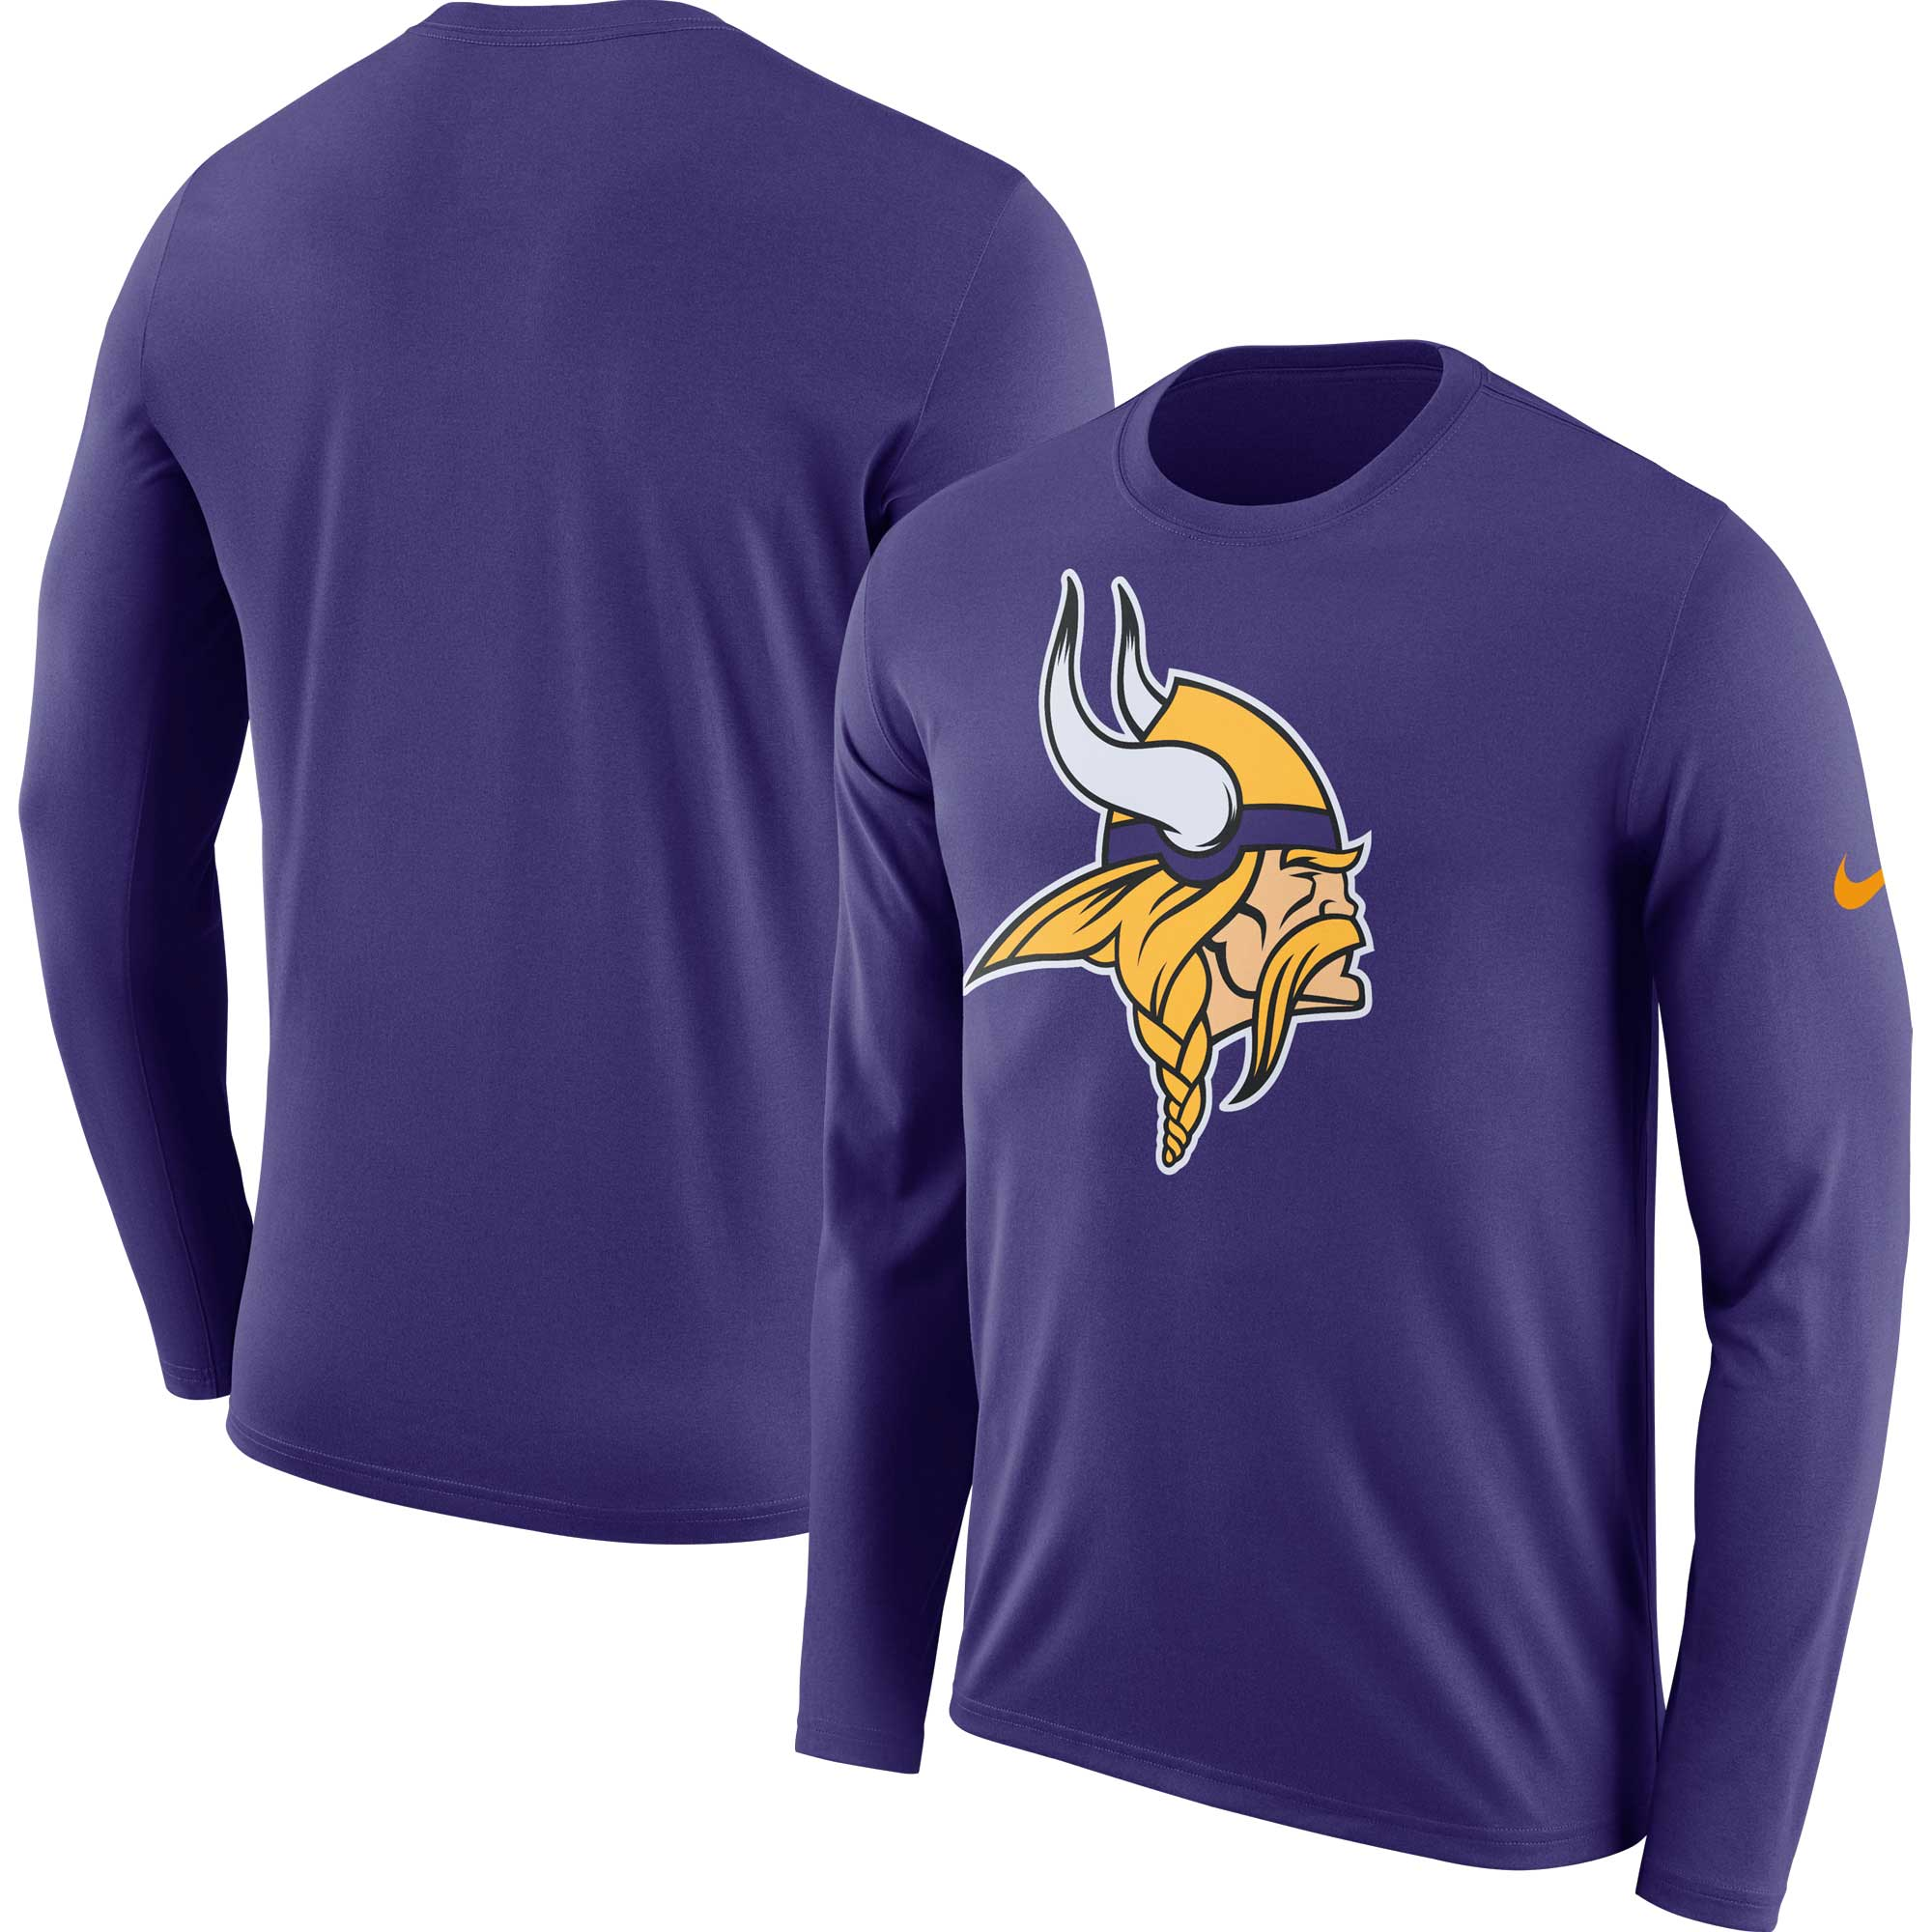 Minnesota Vikings Nike Fan Gear Primary Logo Long Sleeve Performance T-Shirt - Purple - 3XL